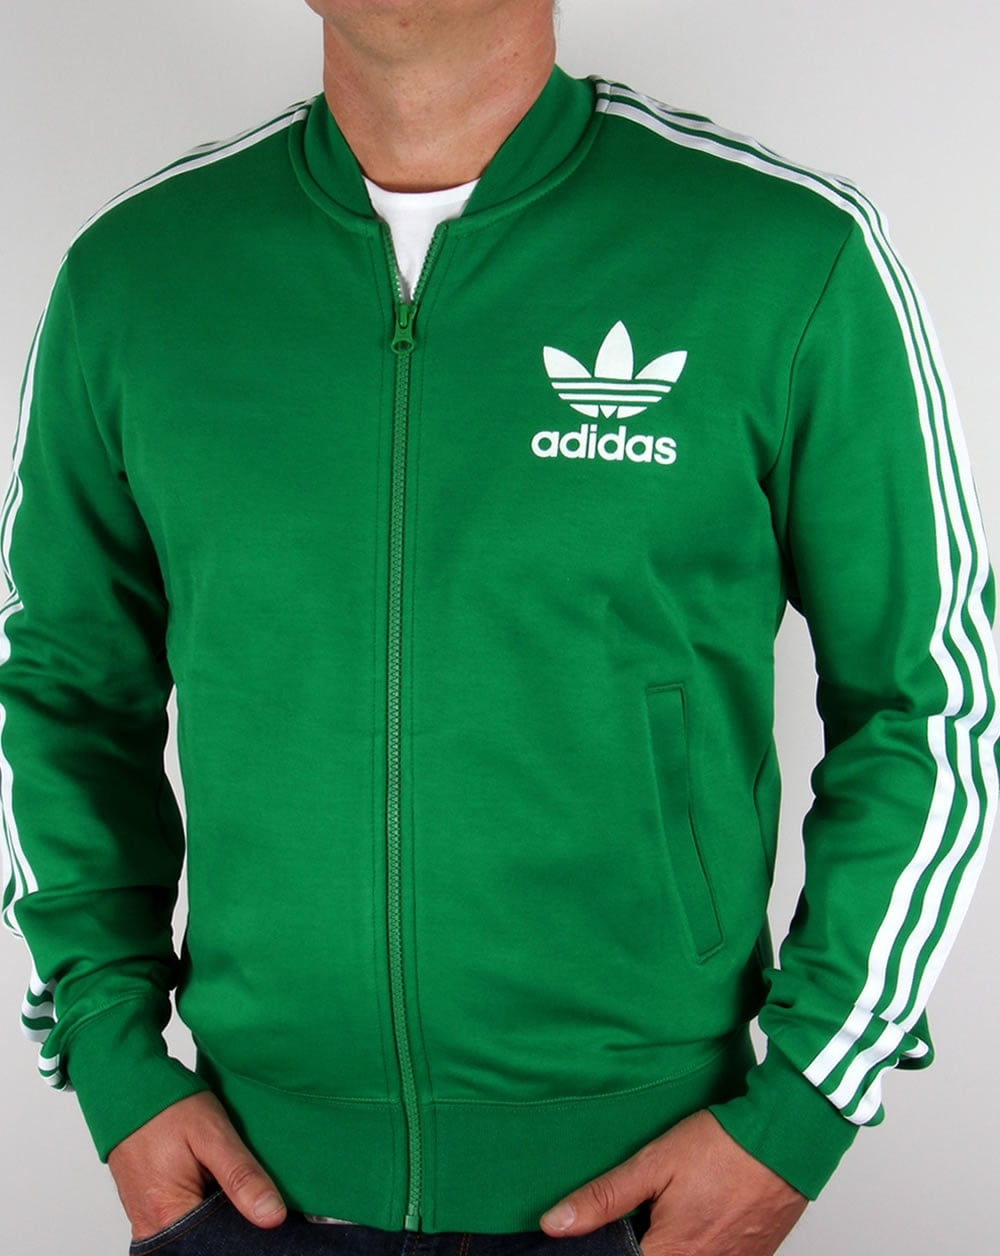 673462f8a4843e adidas Originals Adidas Originals Superstar Track Top Green White